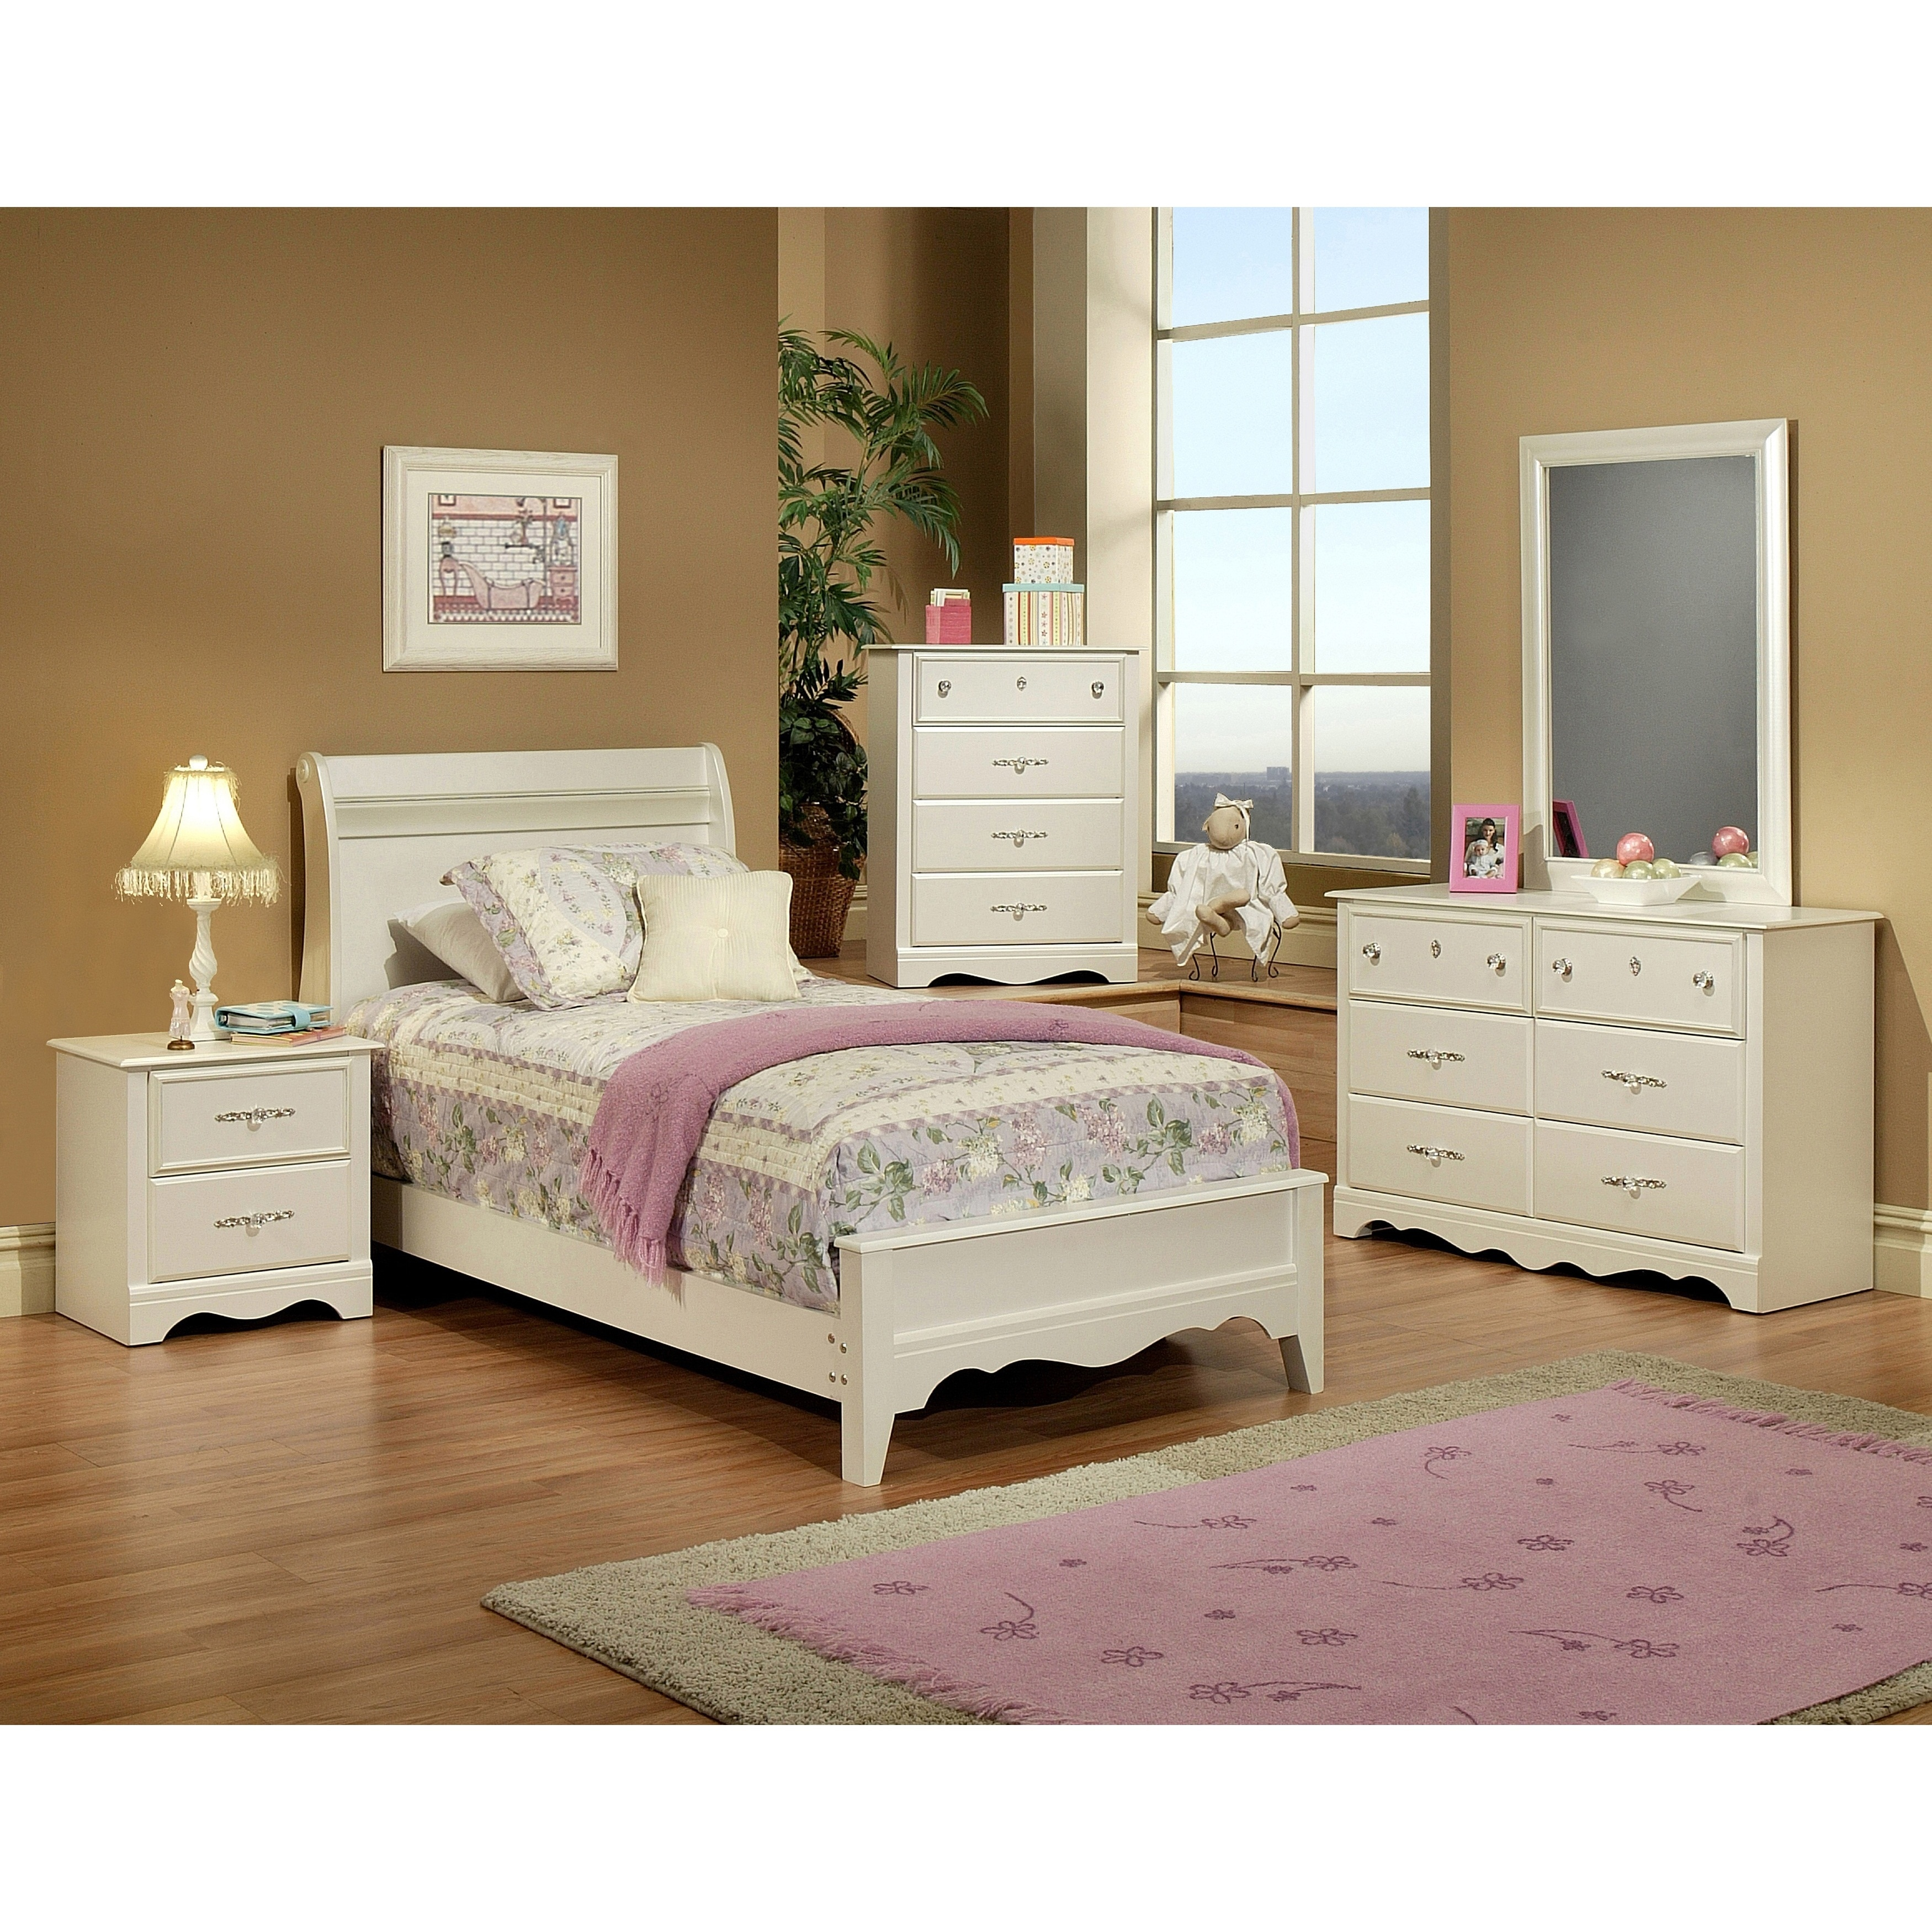 Discount Childrens Bedroom Furniture: Privacy Policy